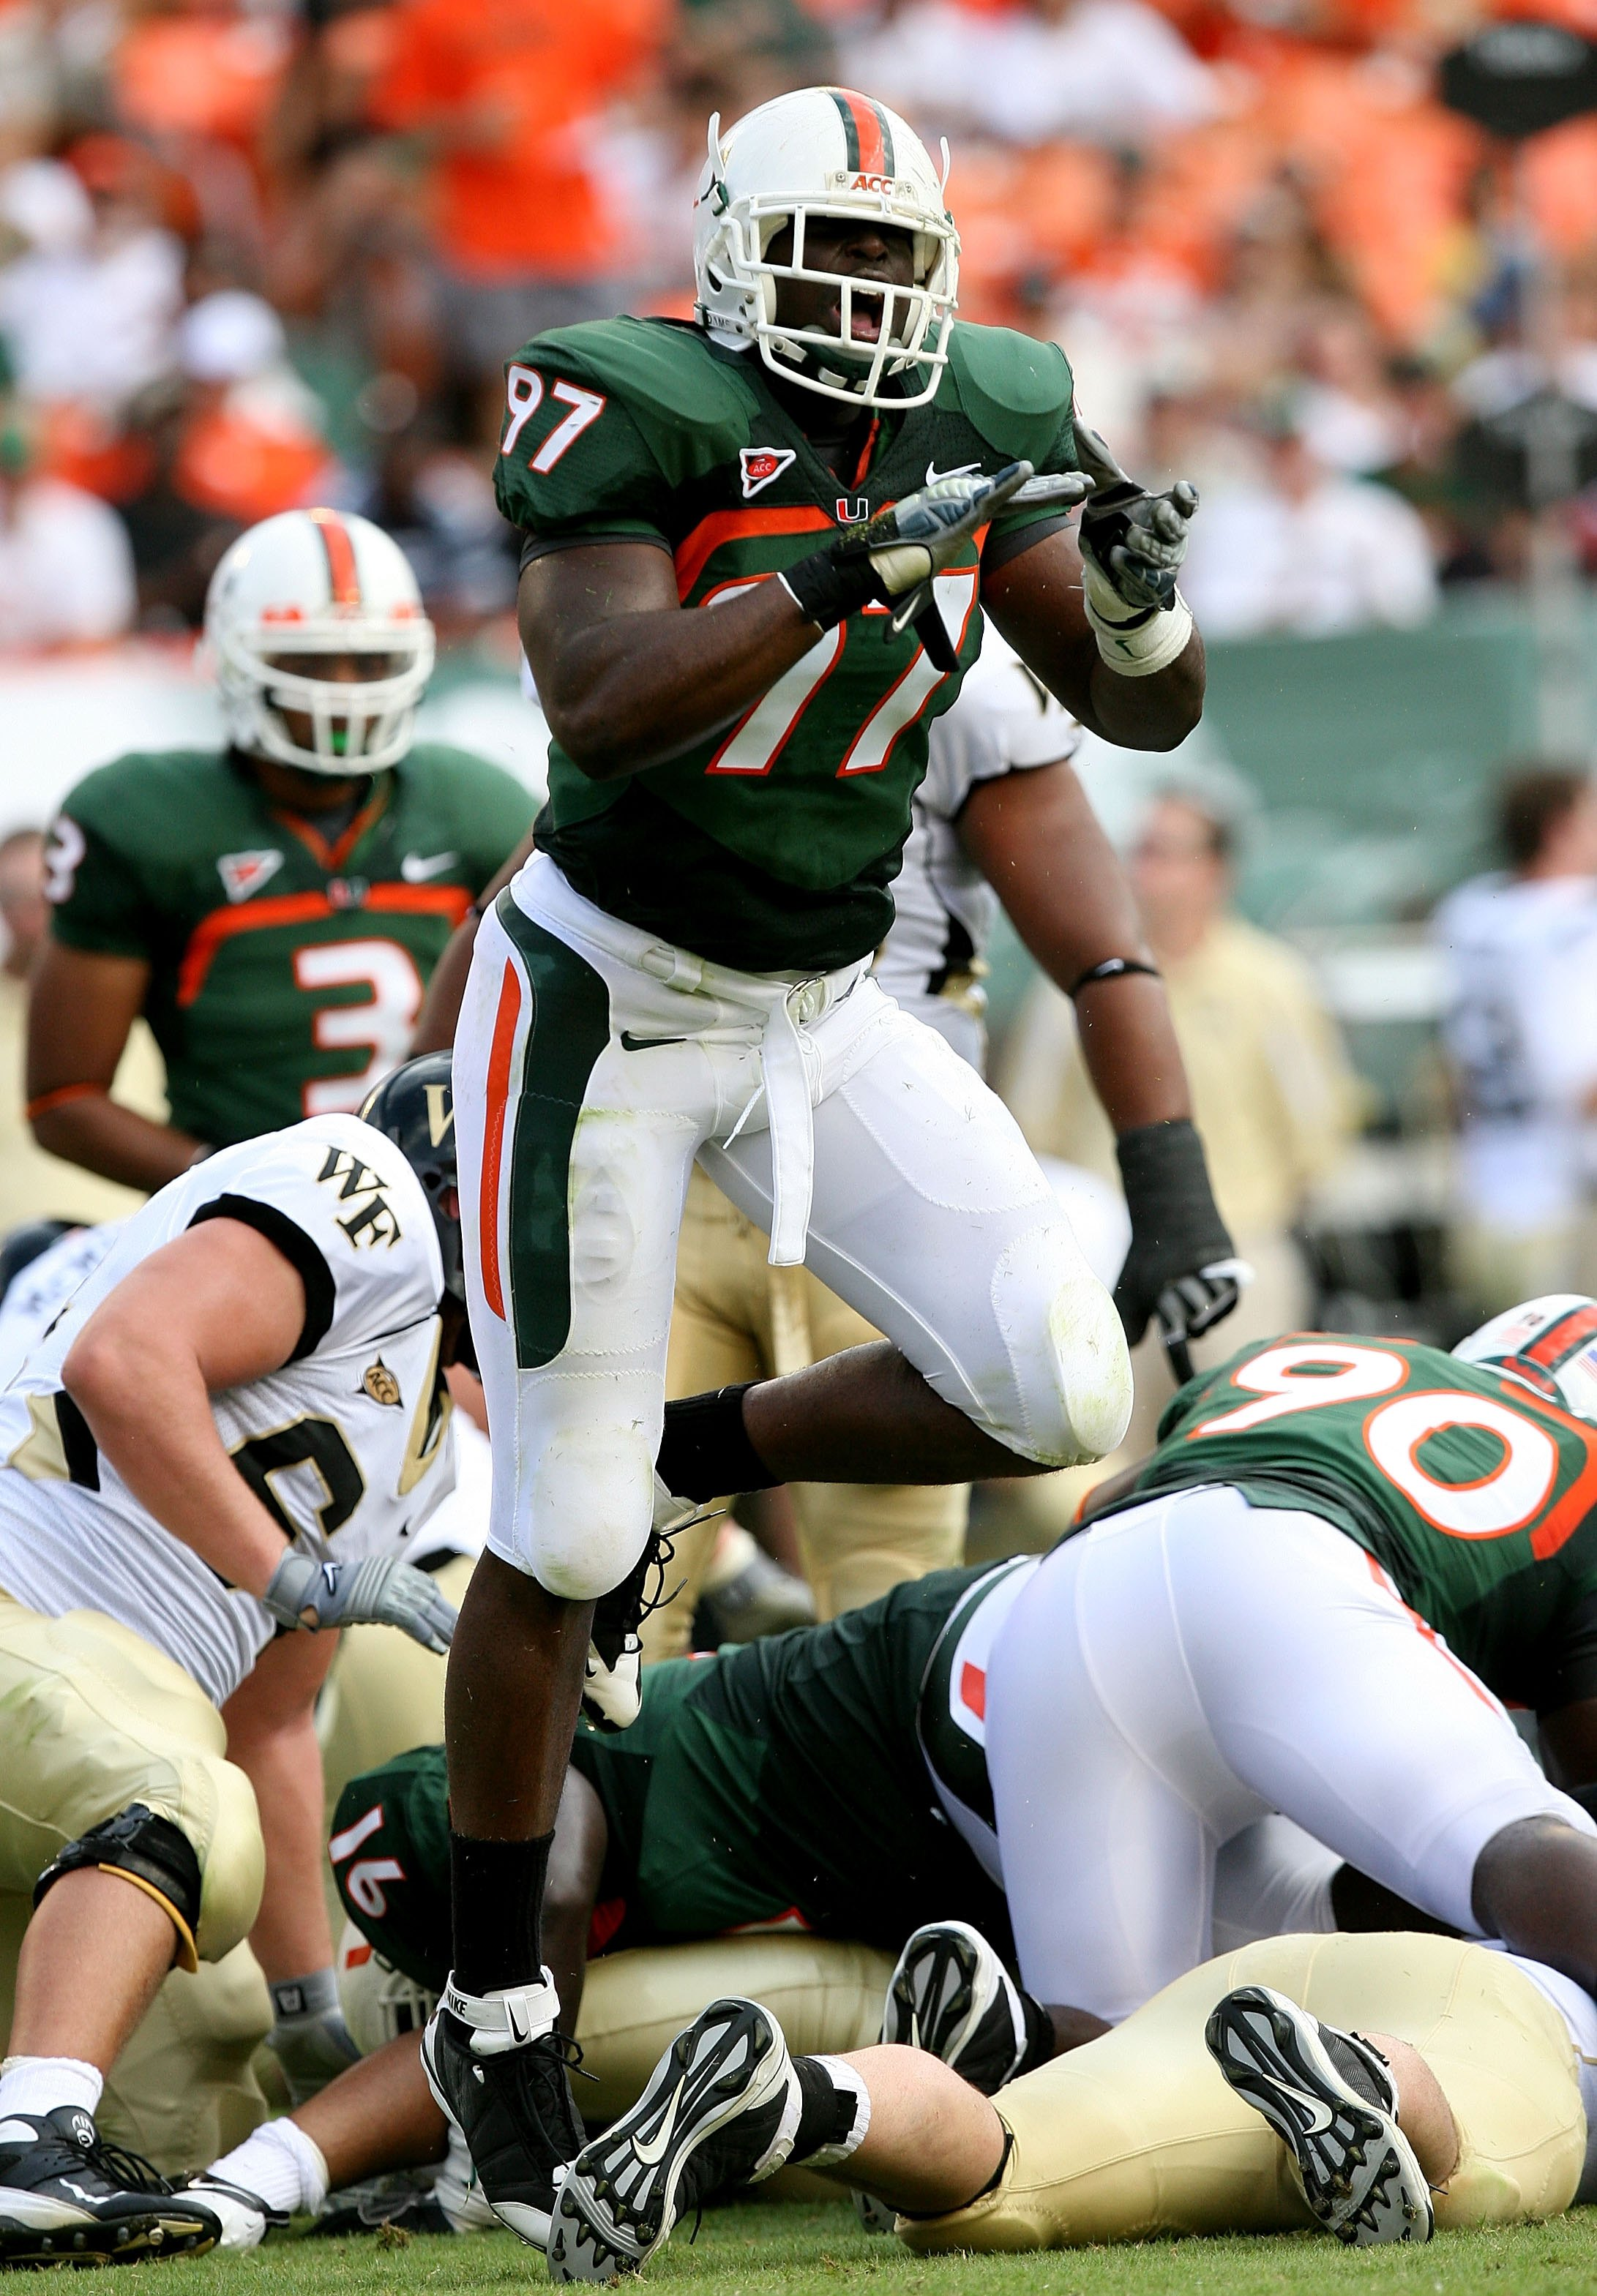 MIAMI - OCTOBER 25:  Defensive lineman Adewale Ojomo #97 of the Miami Hurricanes celebrates after making a tackle for a loss of yardage against the Wake Forest Demon Decons at Dolphin Stadium on October 25, 2008 in Miami, Florida. Miami defeated Wake Fore